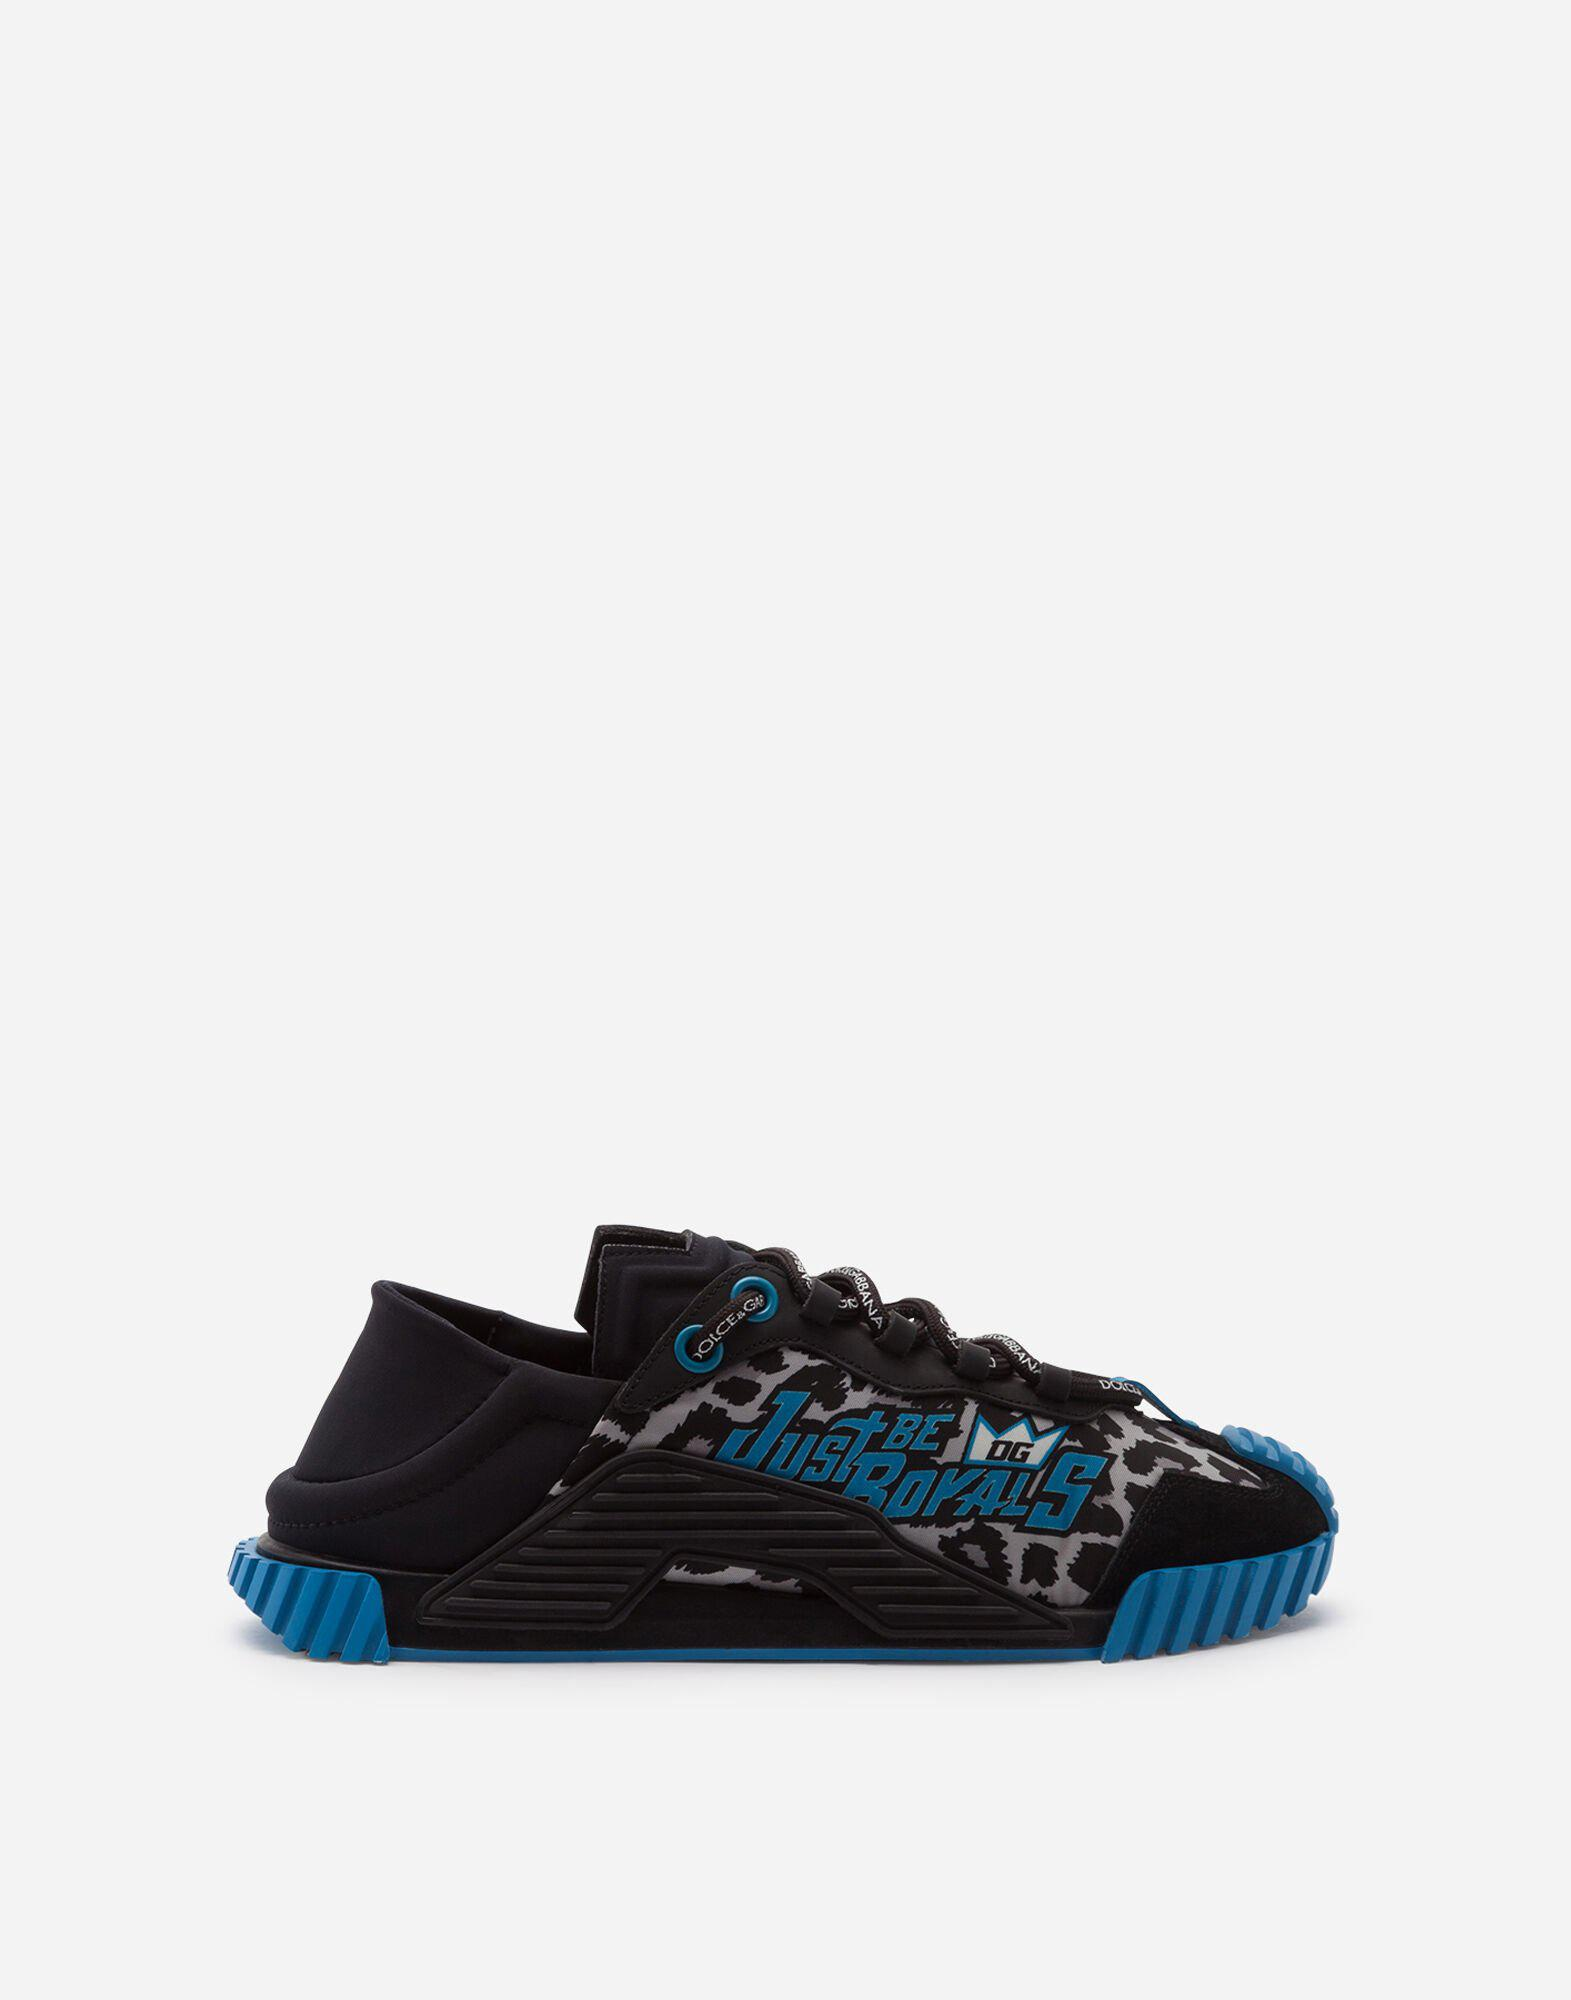 Mixed material NS1 slip-on sneakers with jungle print over a light blue base